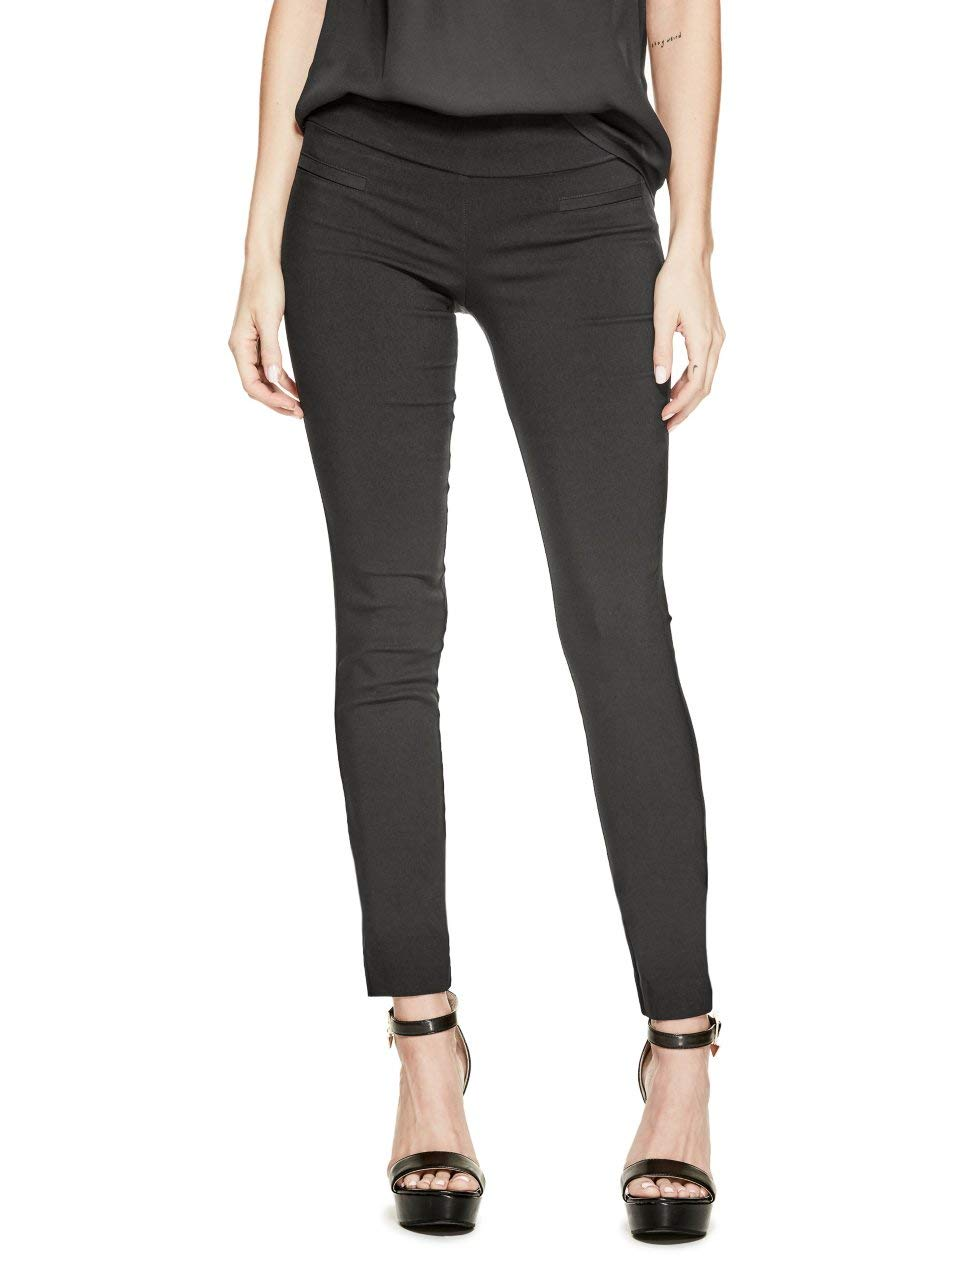 GUESS Factory Women's Beatrix Super-Stretch Pants by GUESS Factory